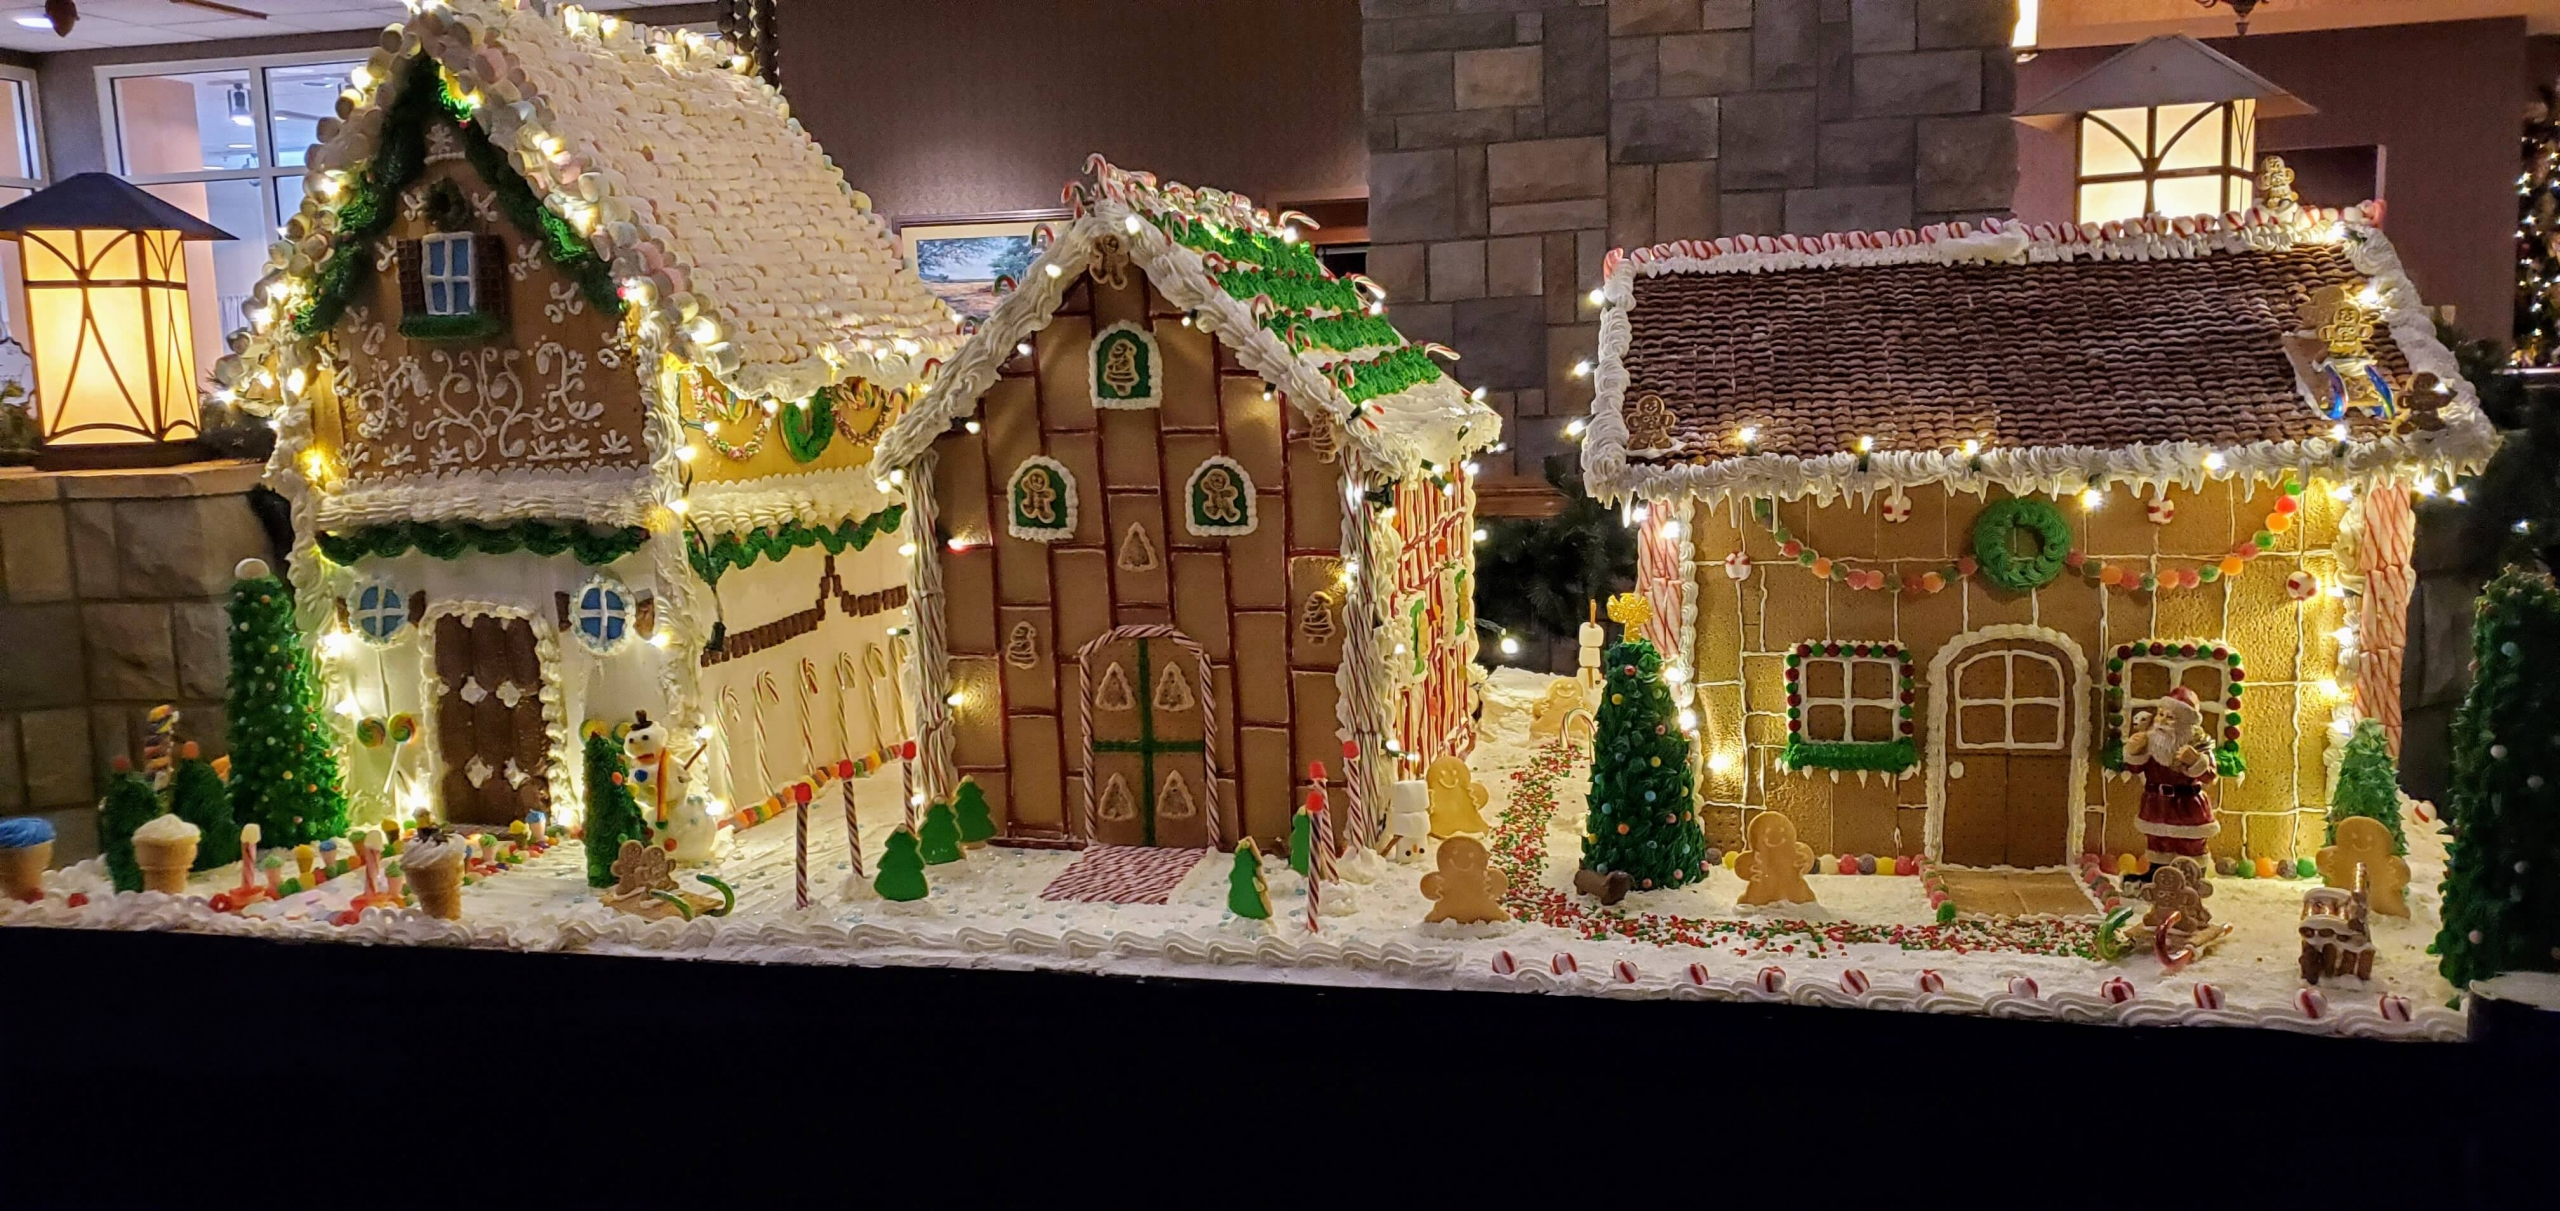 Gingerbread houses at Chateau on the Lake in Branson, MO